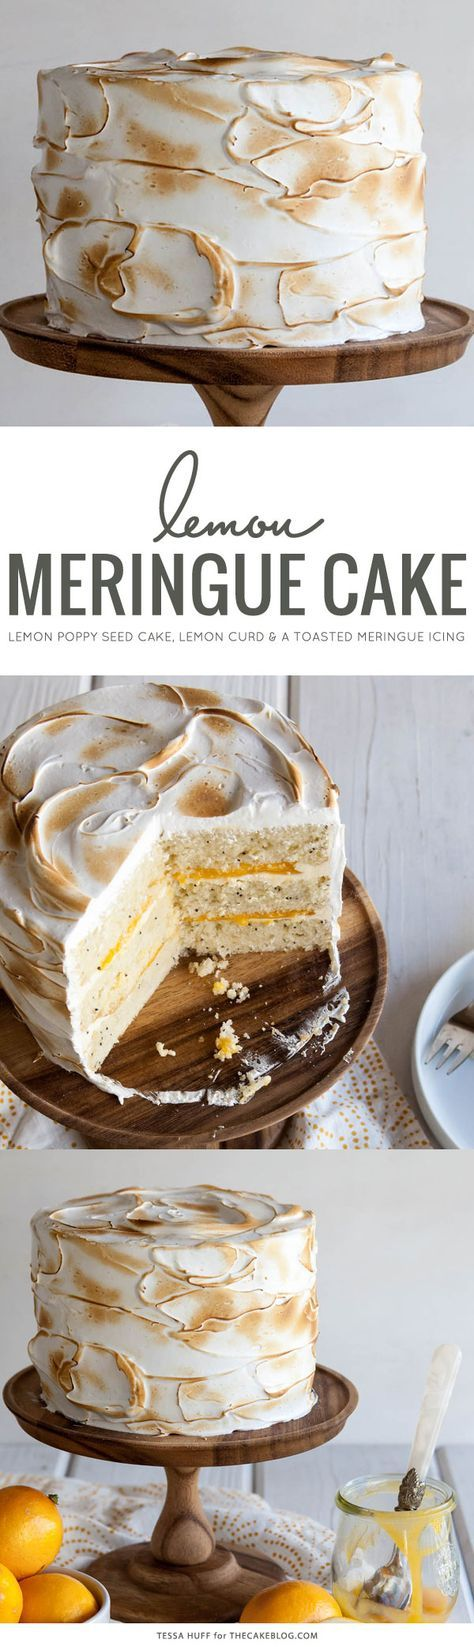 Lemon Meringue Cake - Bright, fresh and perfect for summer! Lemon poppy seed cake with lemon curd and toasted meringue frosting.